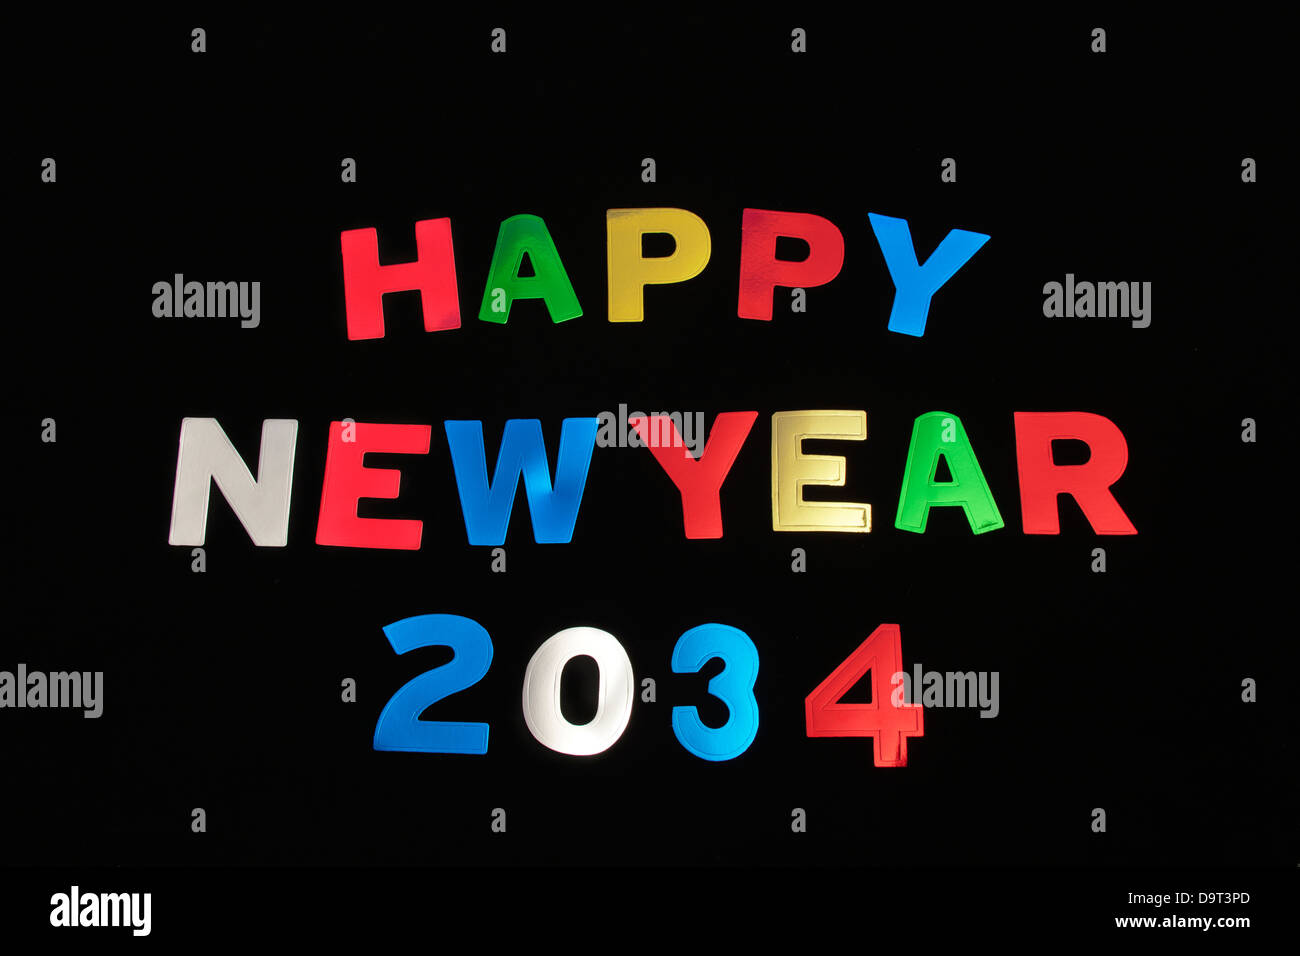 HAPPY NEW YEAR 2034Stock Photo